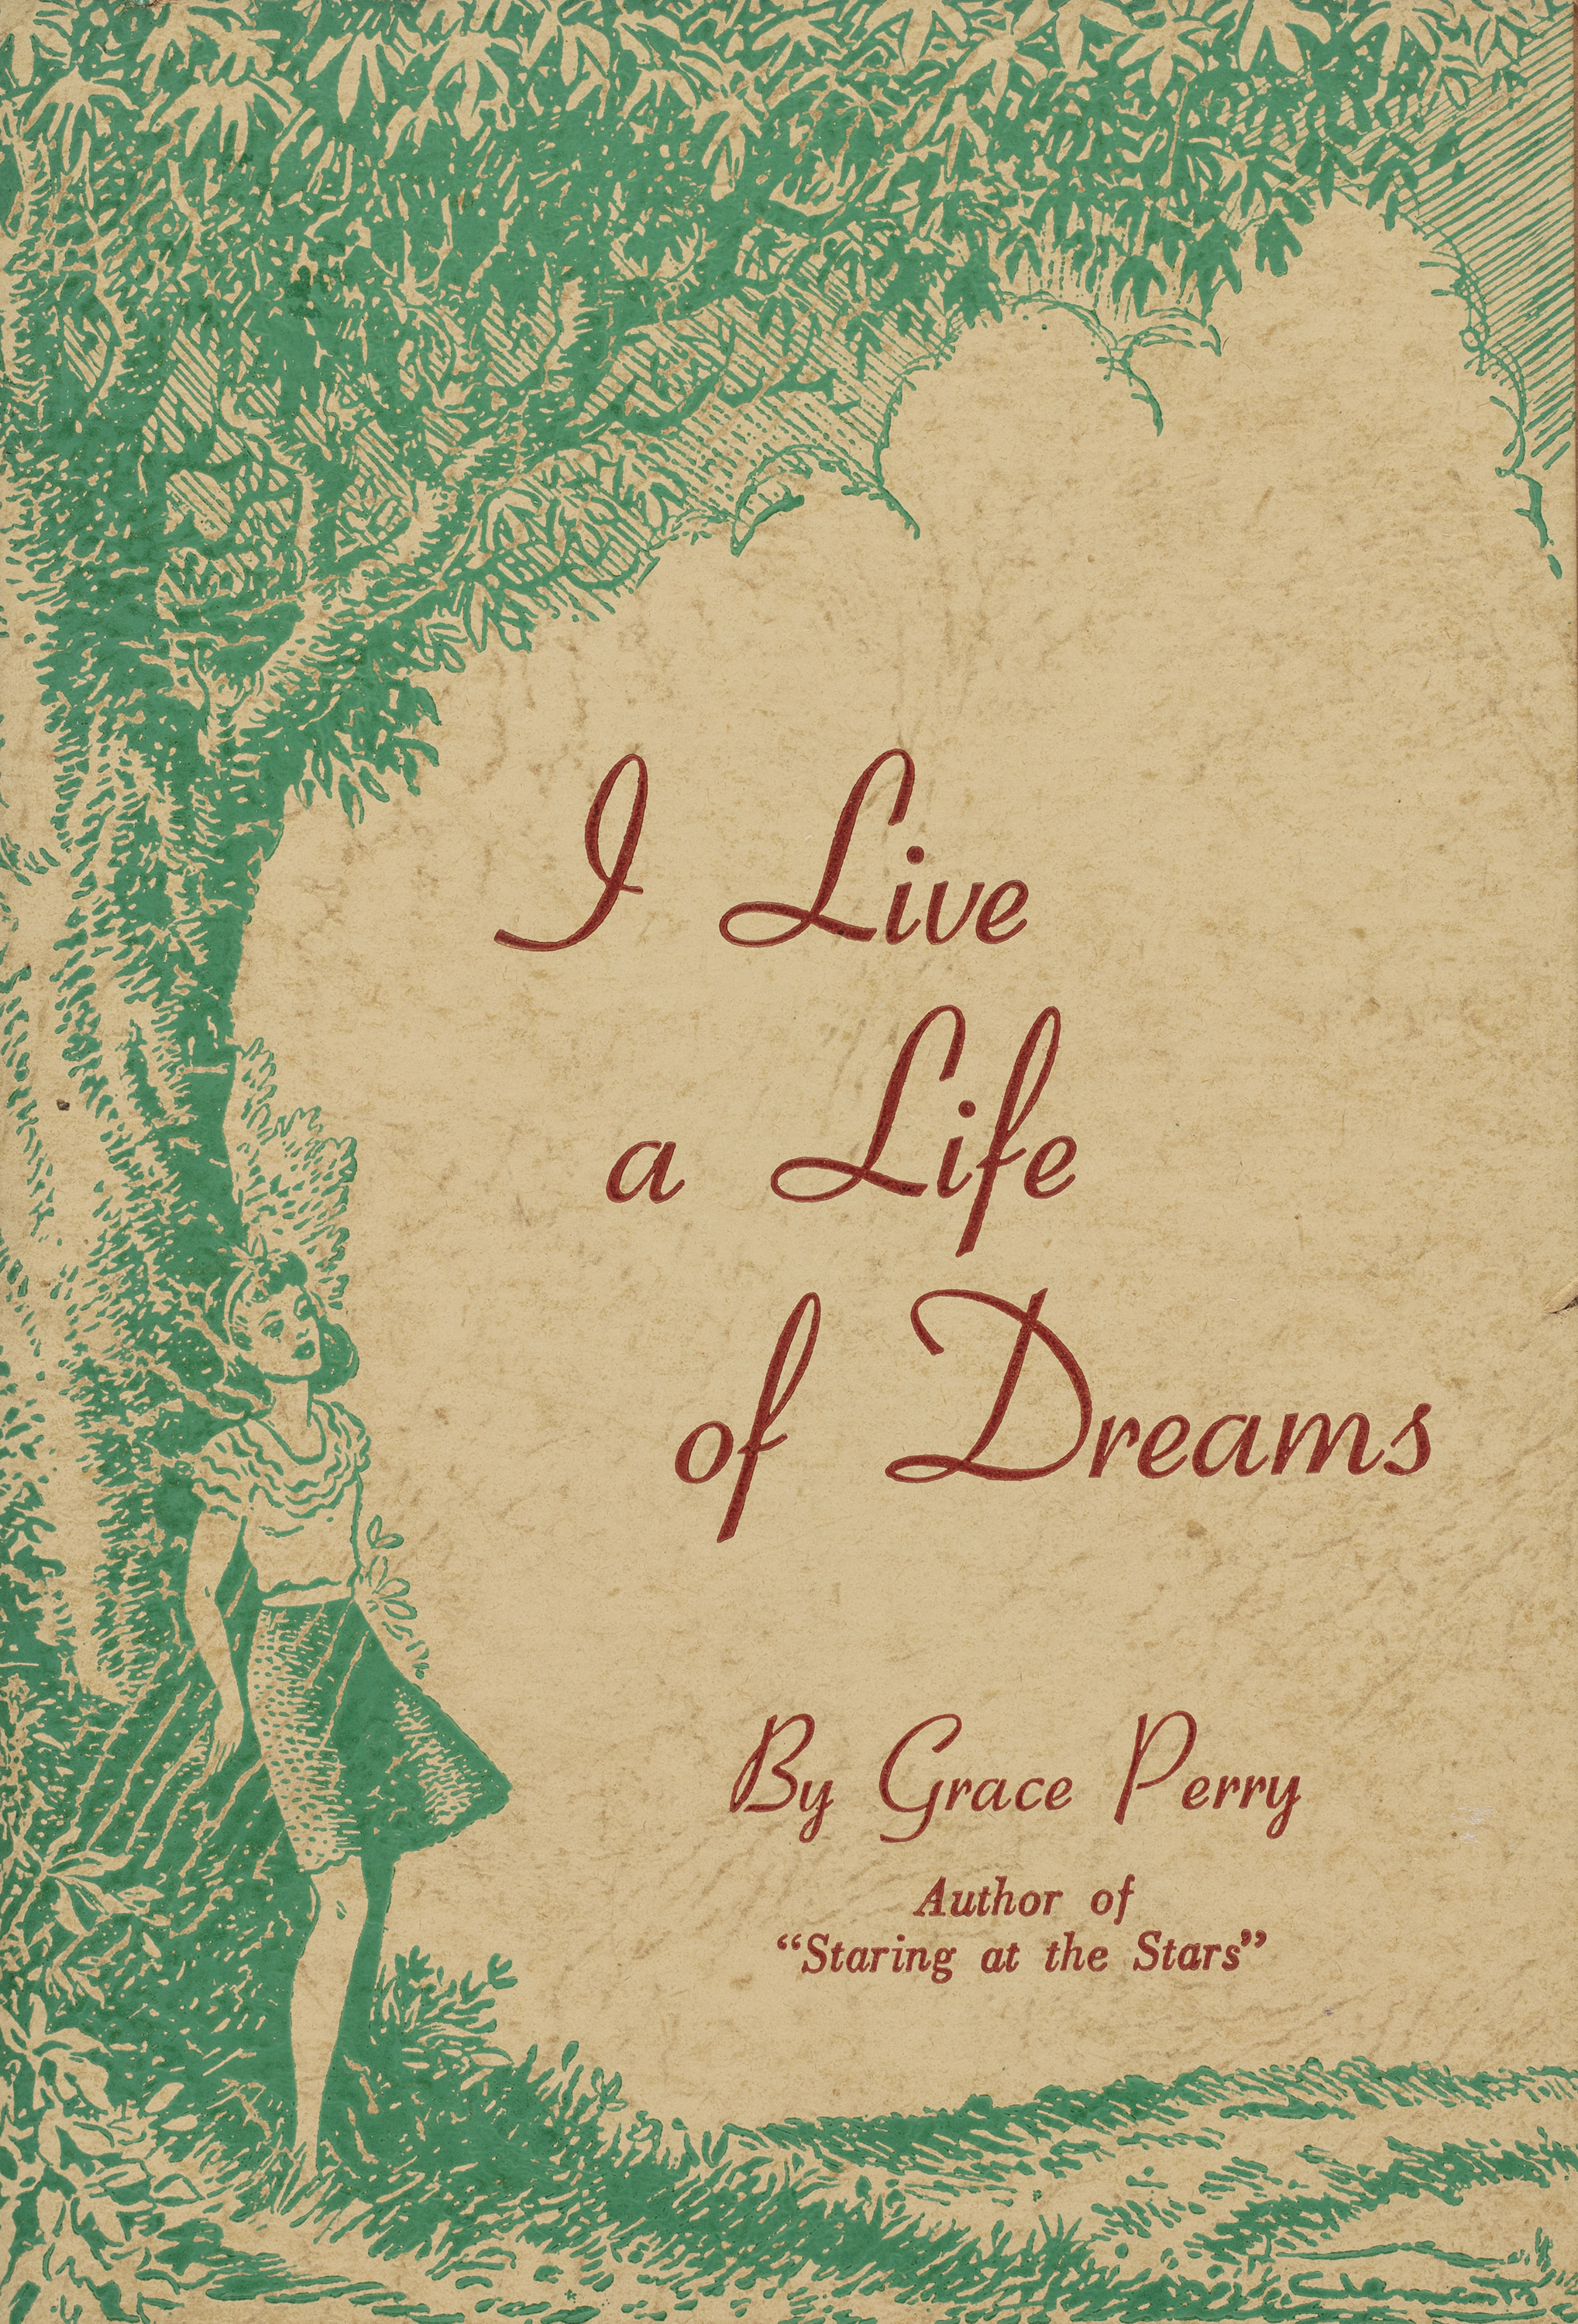 I live a life of dreams, 1943, by Grace Perry